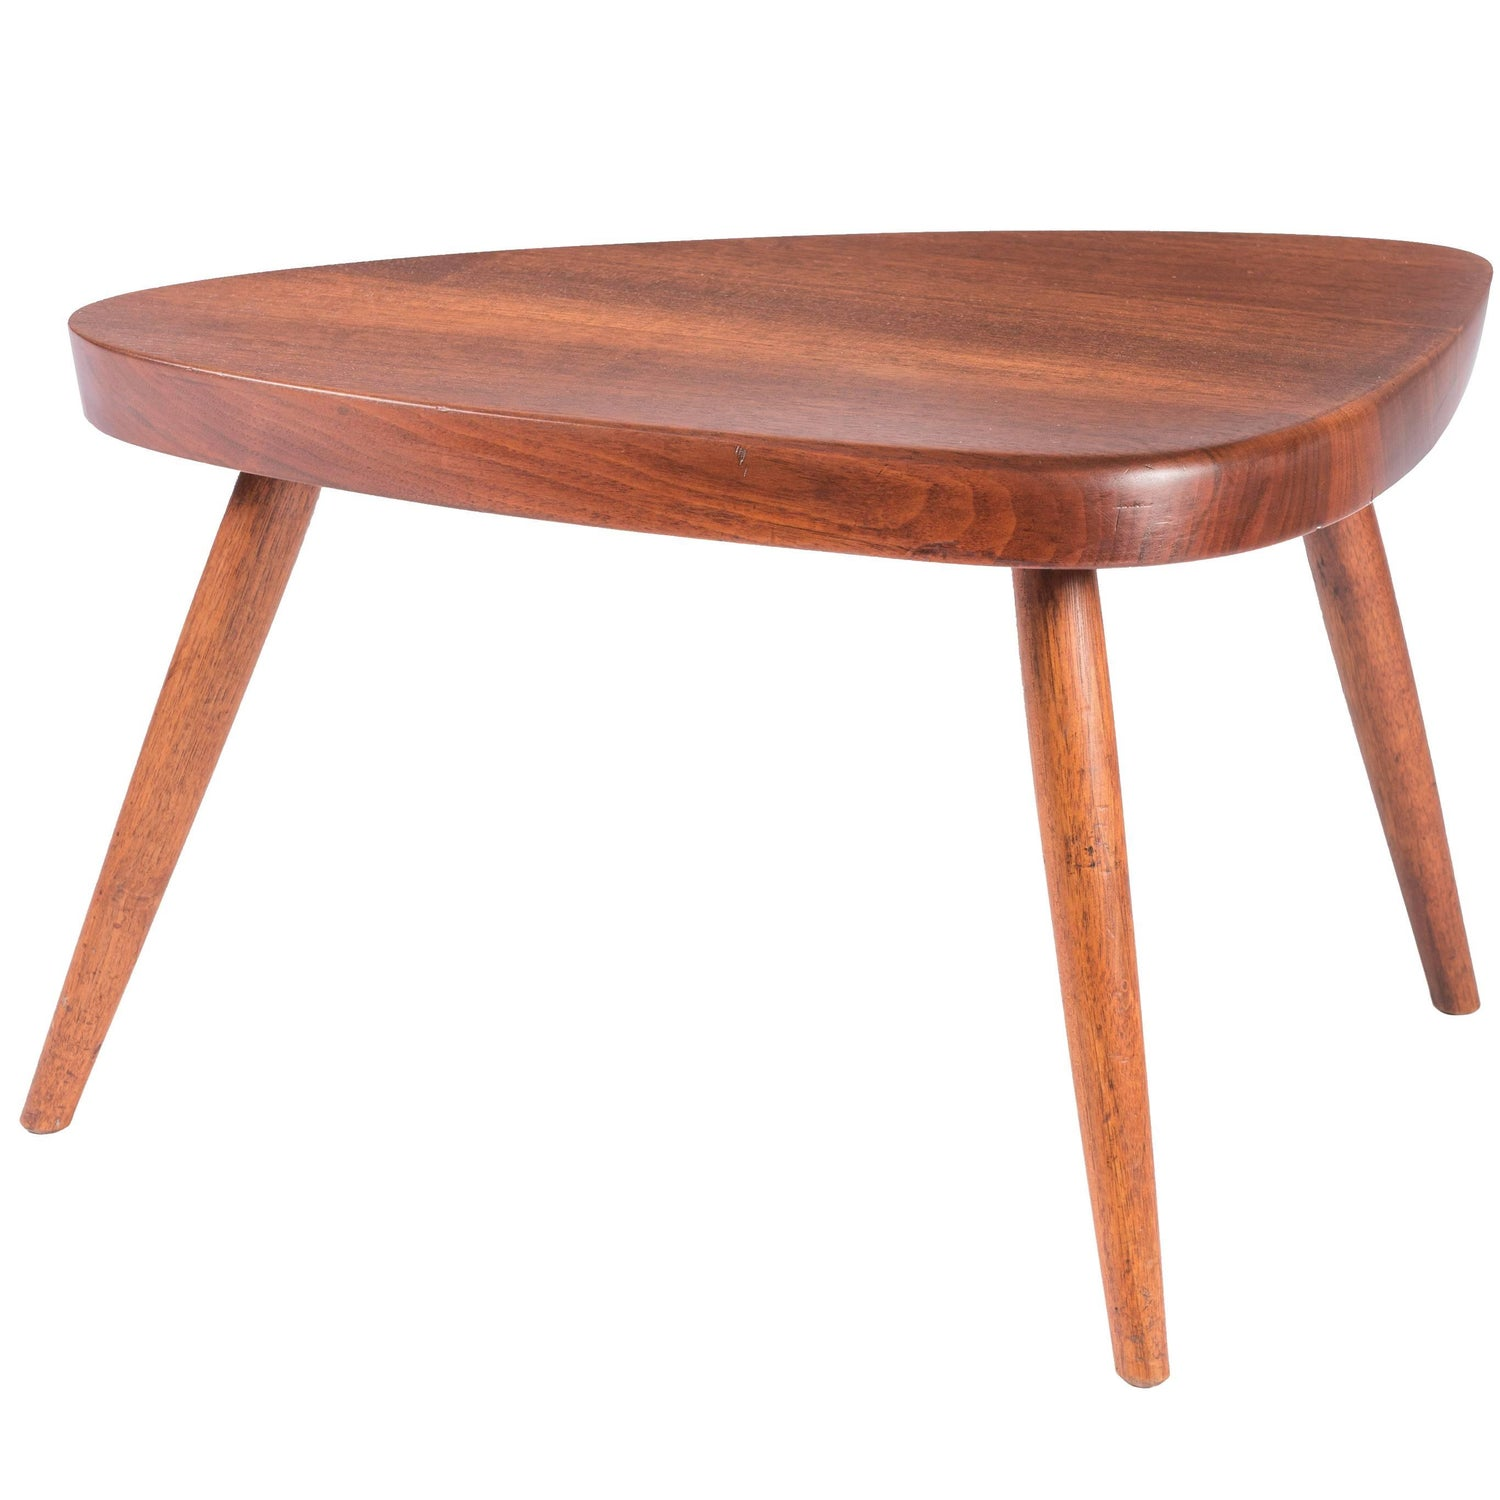 Nakashima Furniture Tables Chairs & More 259 For Sale at 1stdibs